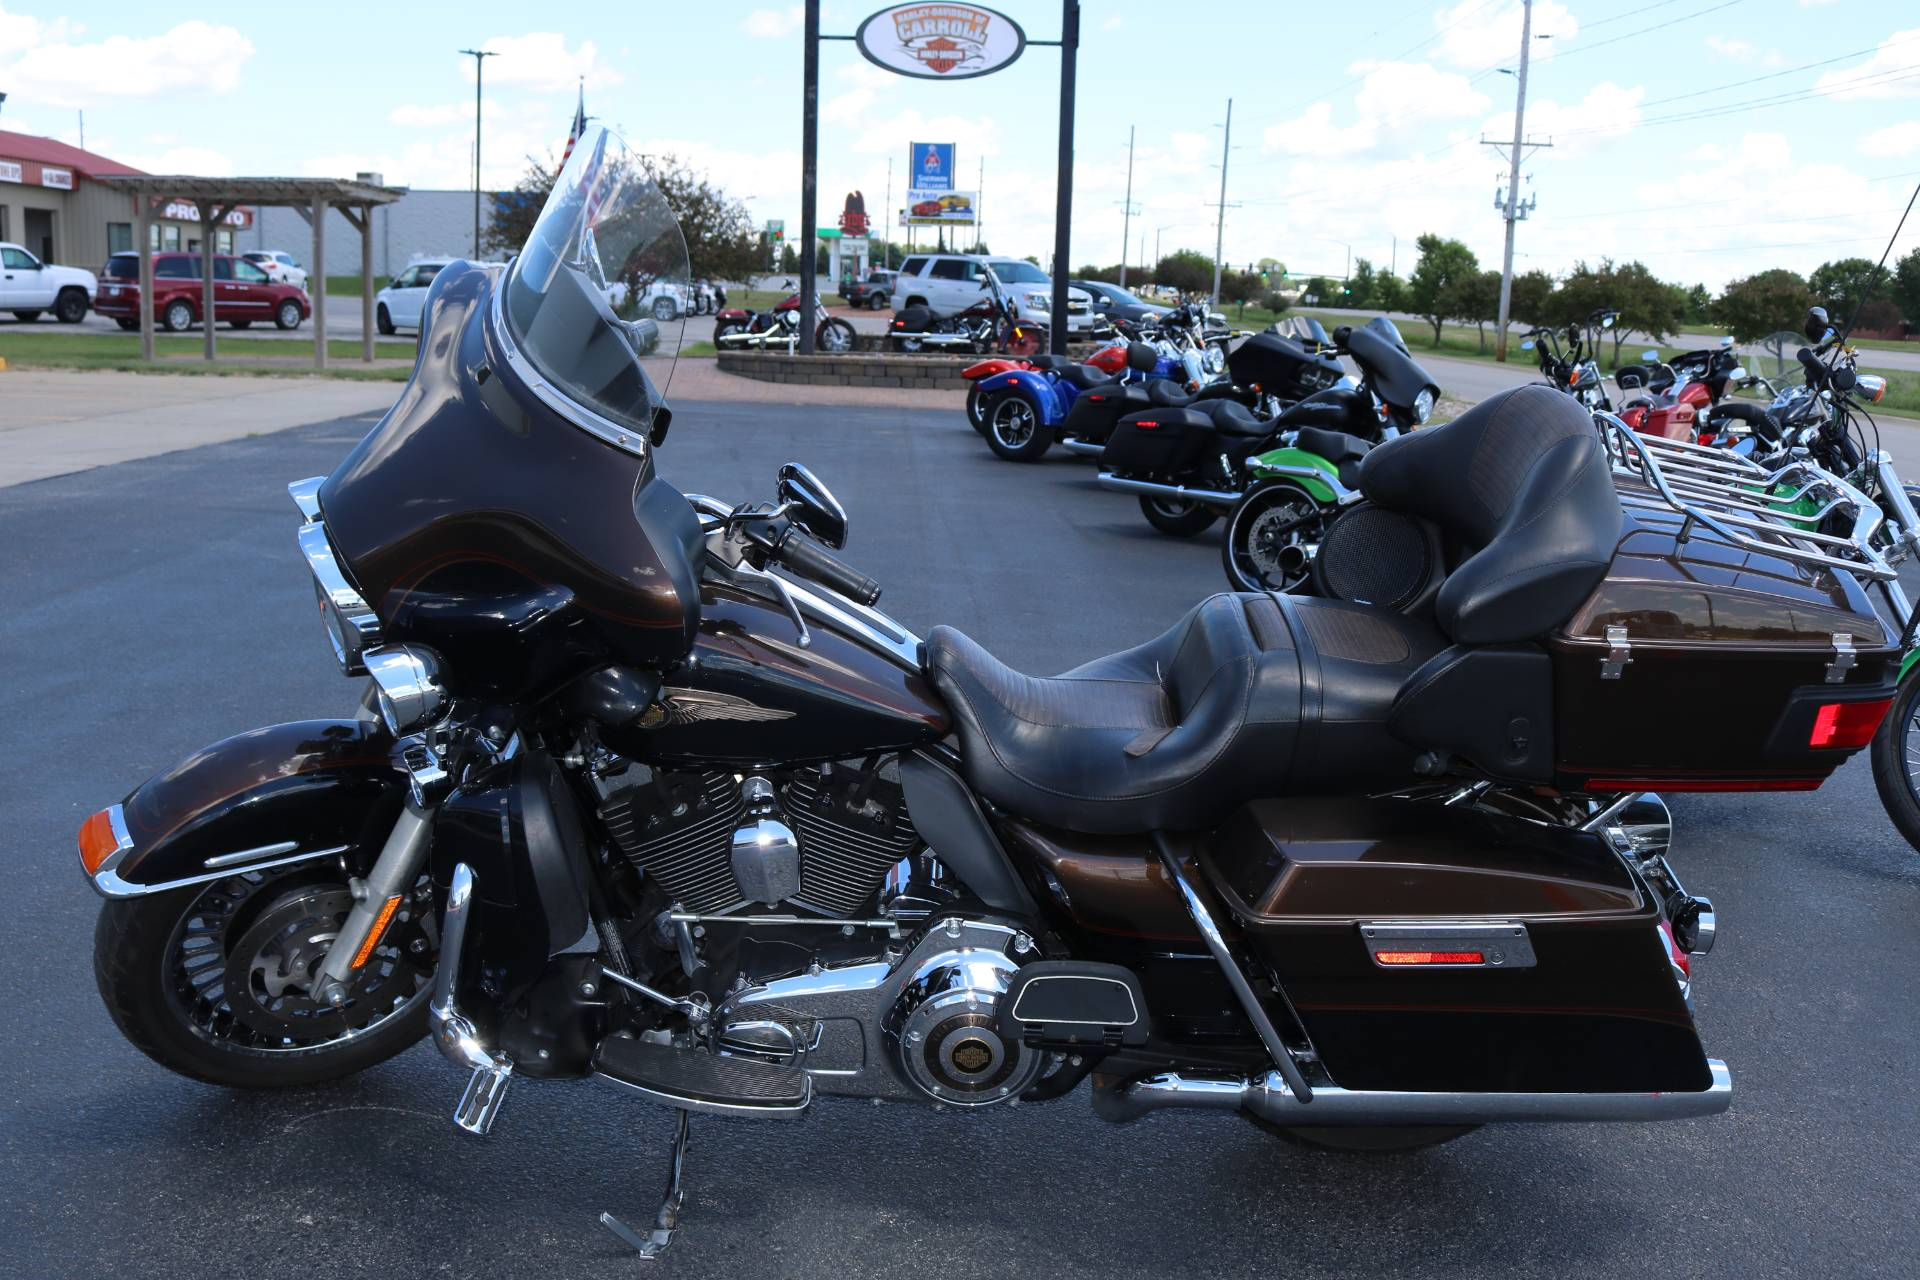 2013 Harley-Davidson Electra Glide® Ultra Limited 110th Anniversary Edition in Carroll, Iowa - Photo 1